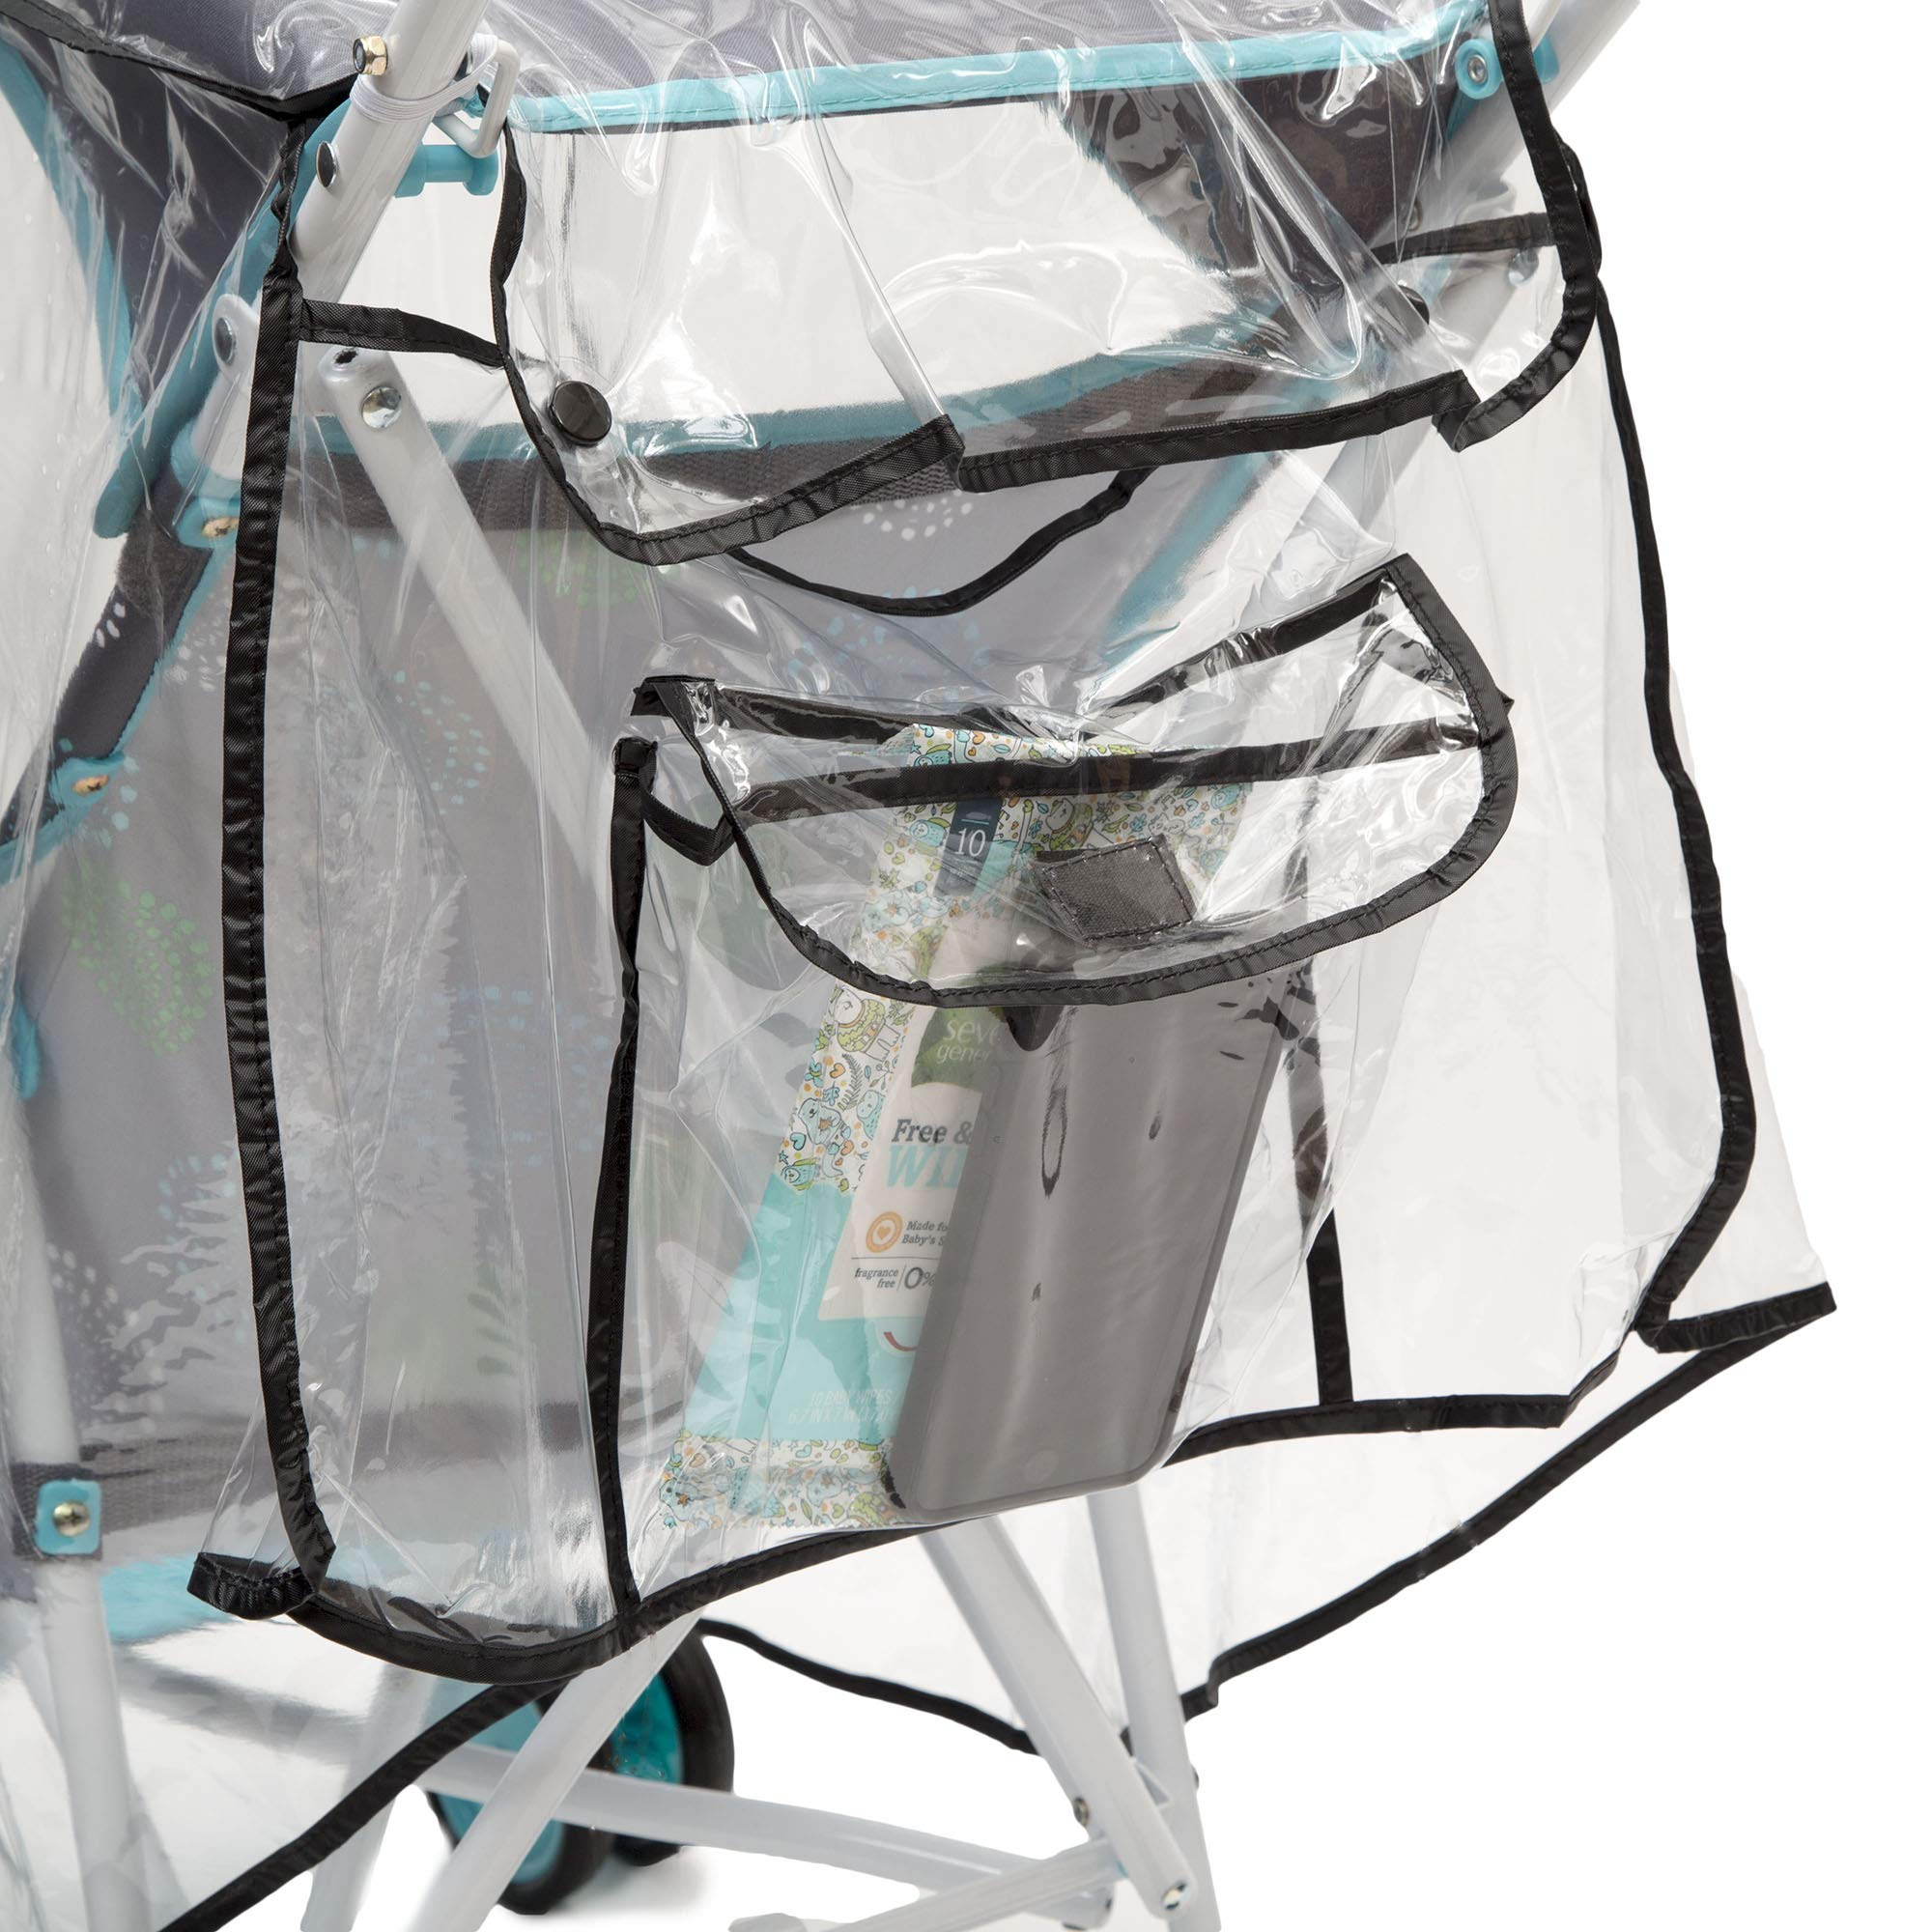 Delta Children Umbrella Stroller Rain Cover | Universal Size | Weather Shield Protects Your Baby from Rain, Wind, Snow, Sleet or Insects | Ventilated | Storage Pocket Included (Clear) by Delta Children (Image #7)